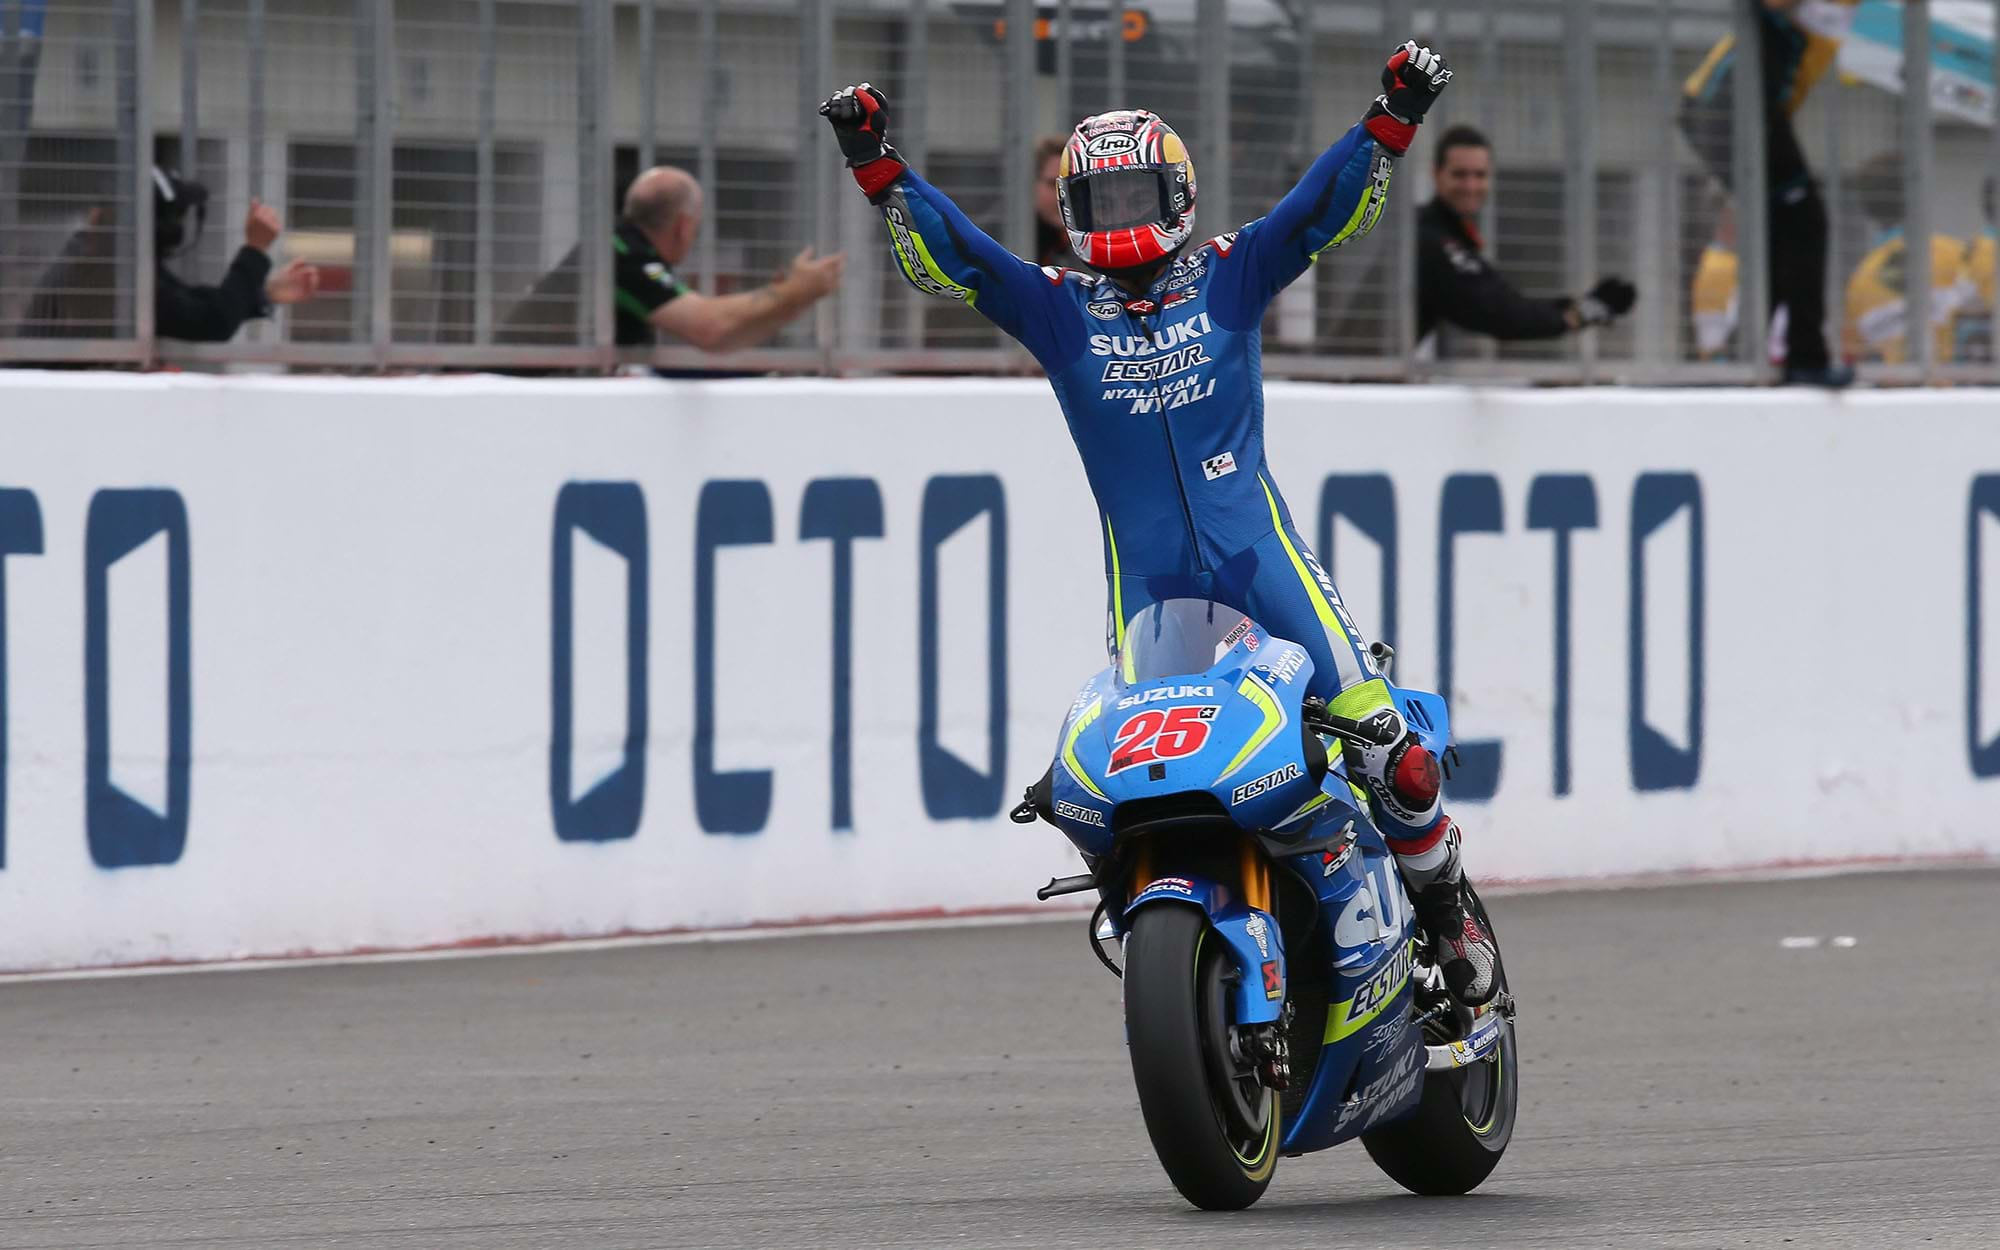 Suzuki win British GP at Silverstone